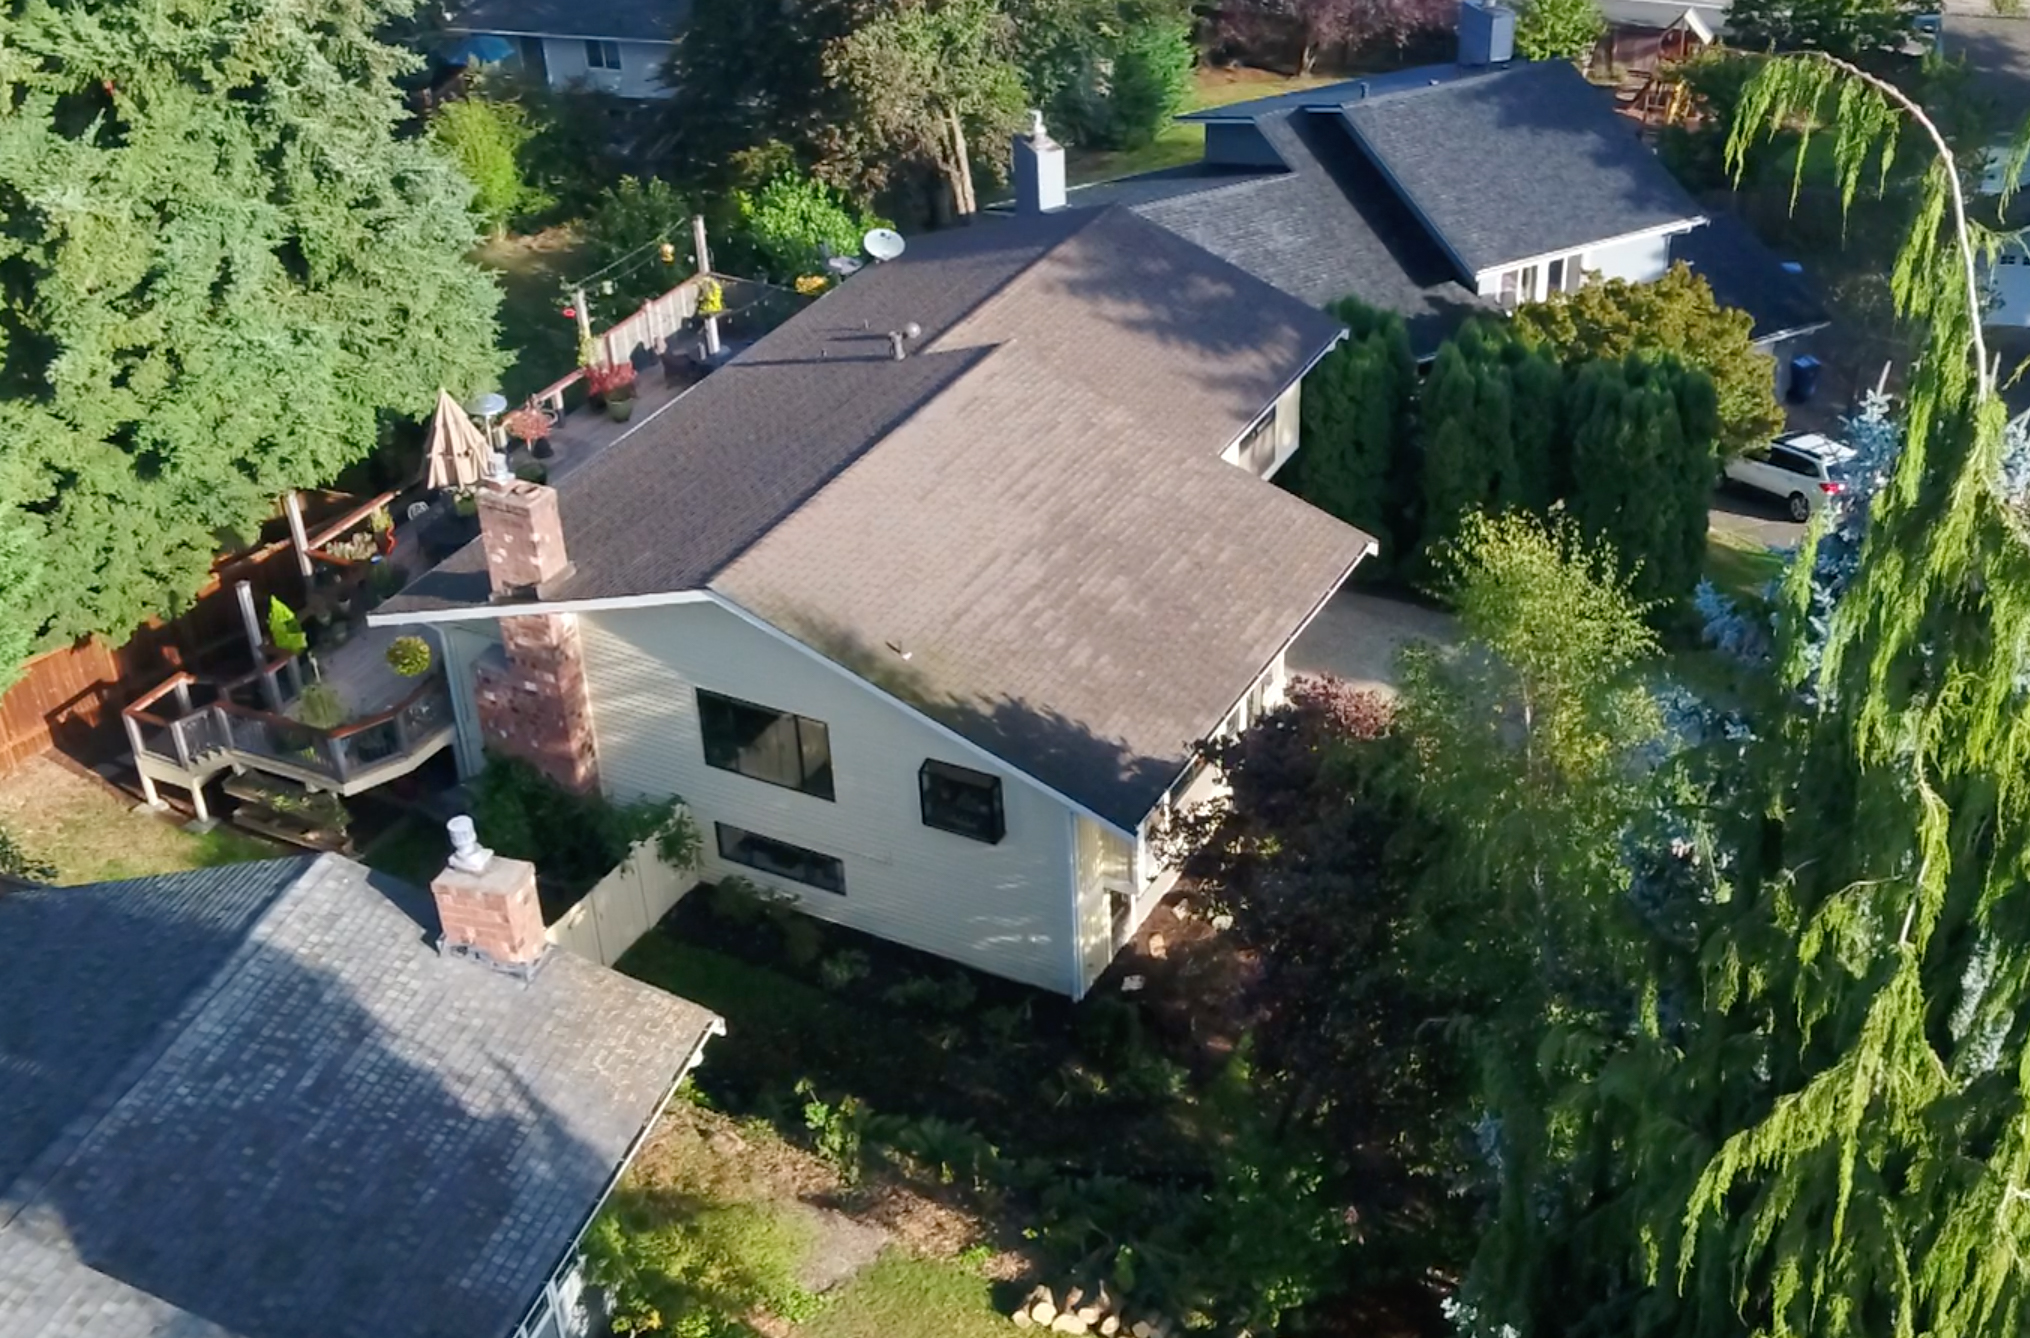 new se arial view9-30-18.jpg